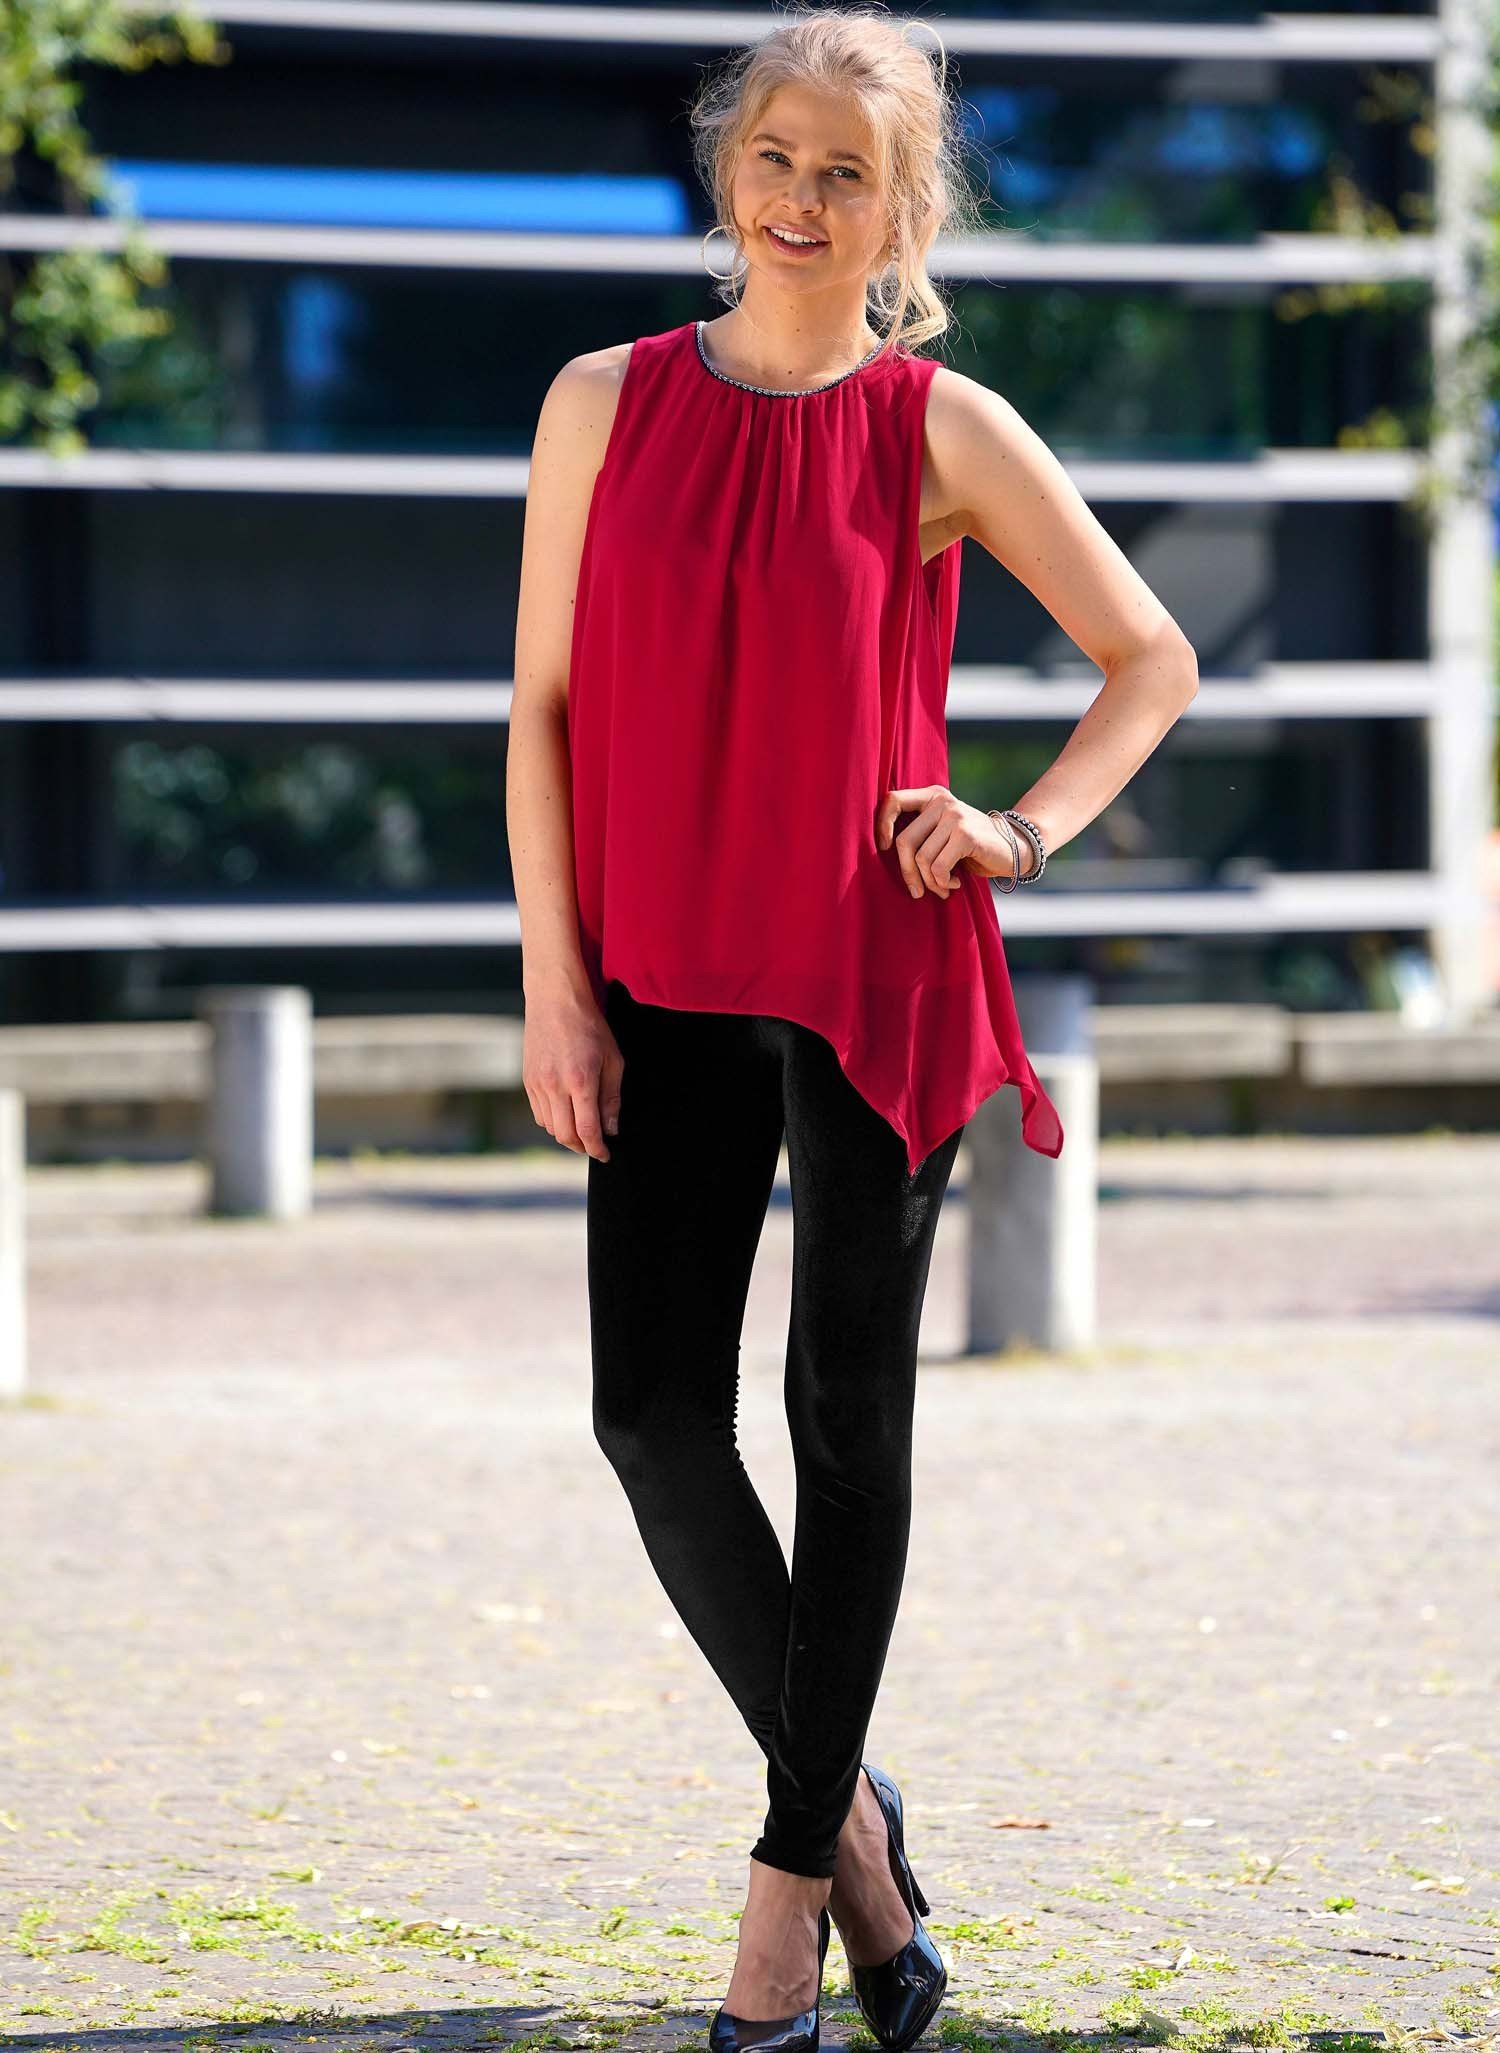 D-Longtop, voile, rot XL 023 - 2 - Ronja.ch